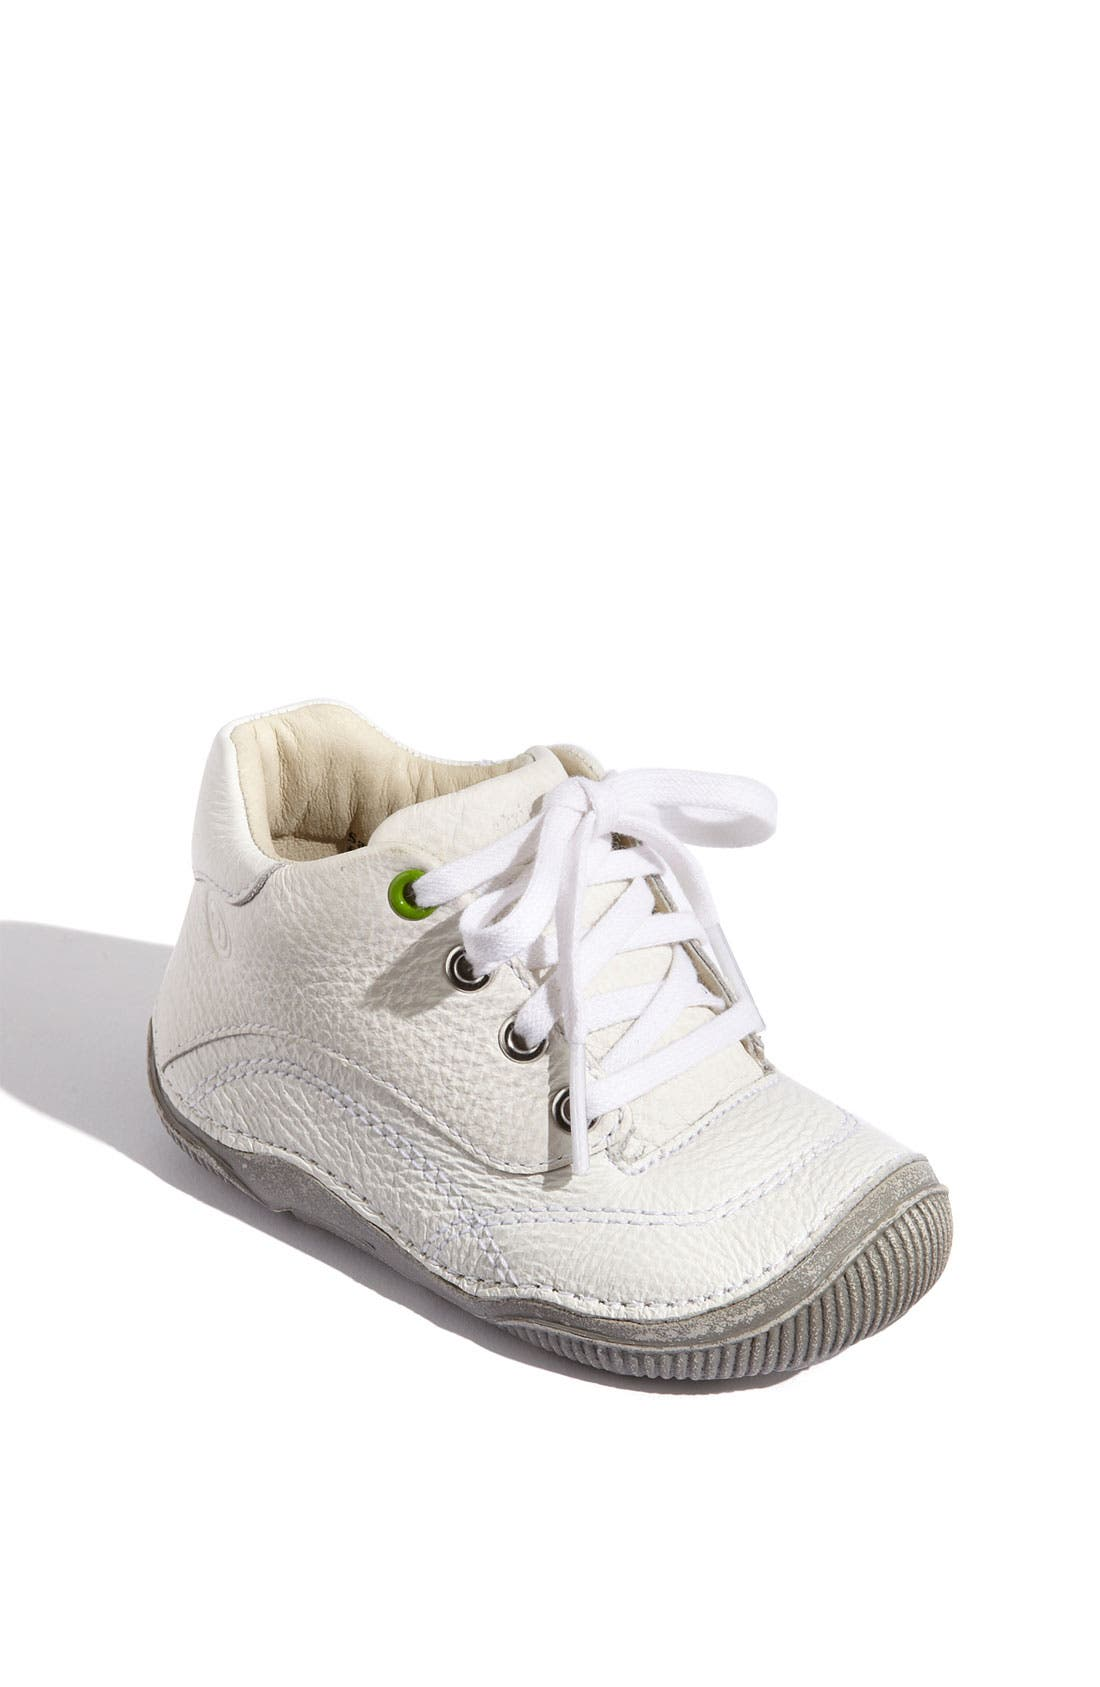 Alternate Image 1 Selected - Stride Rite 'Brattle' Sneaker (Baby, Walker & Toddler)